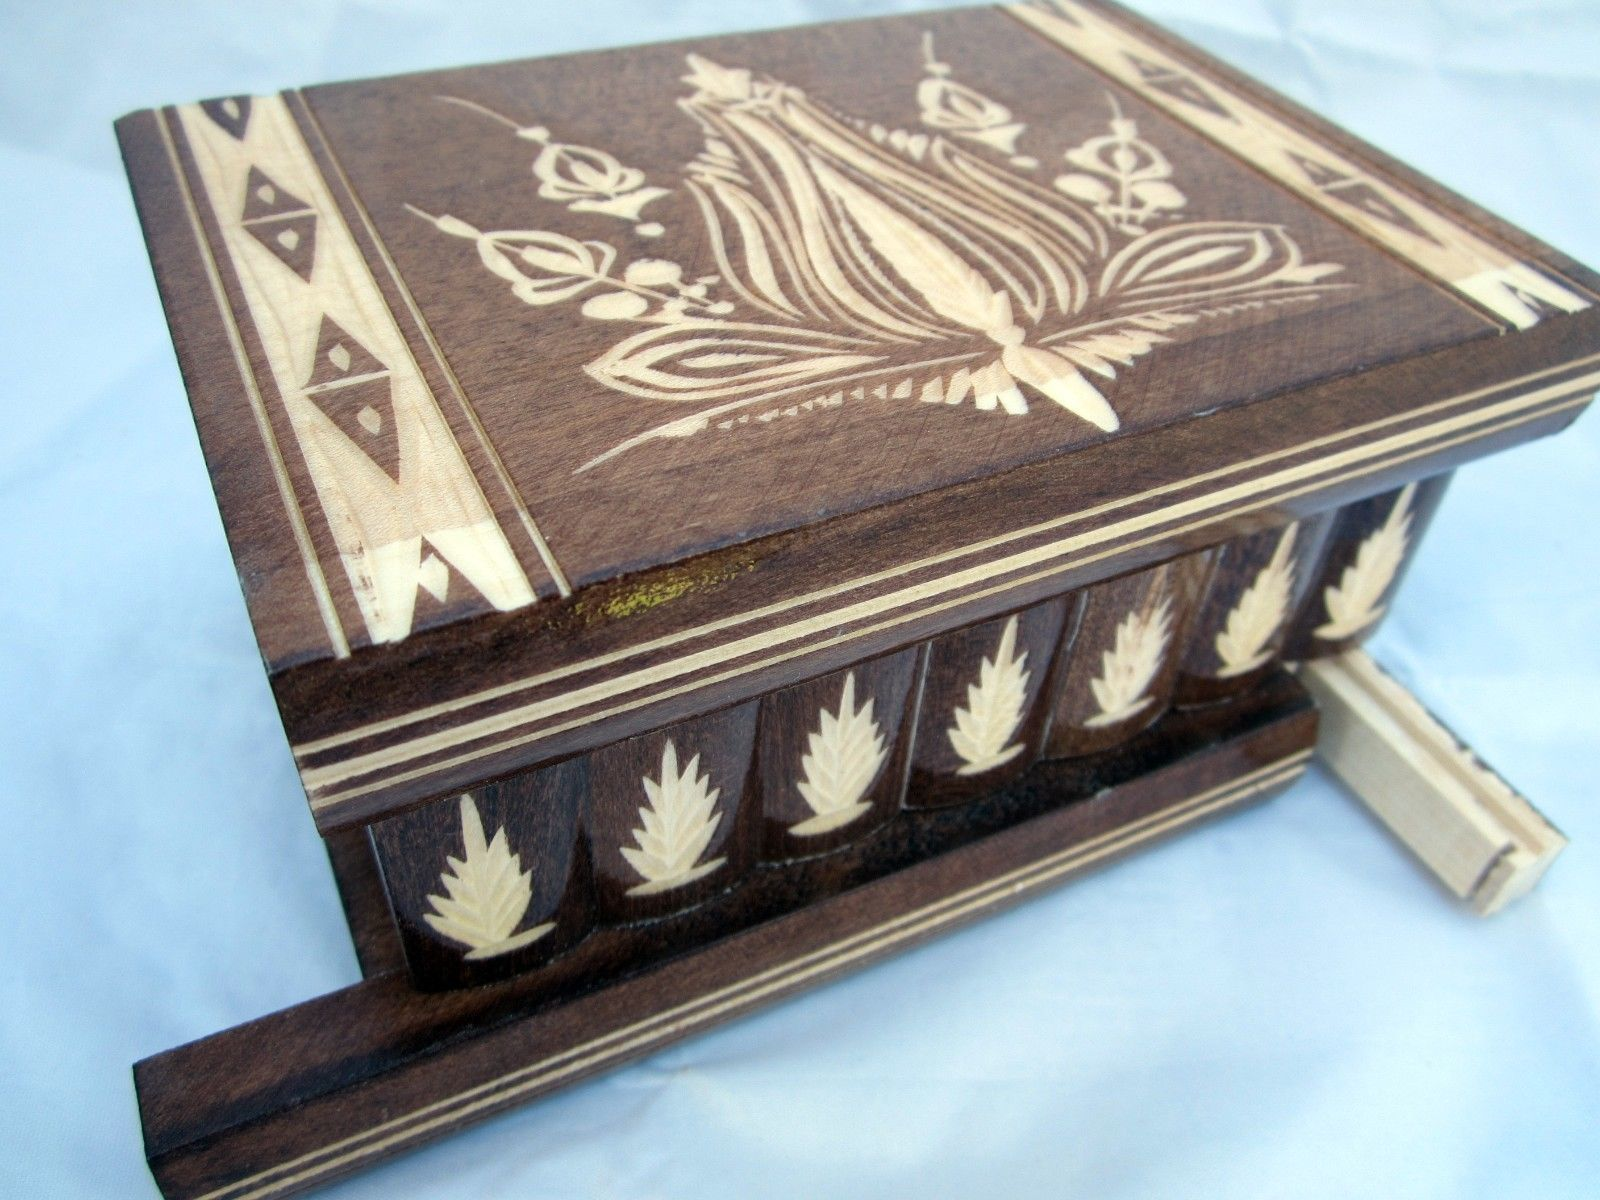 Hungarian puzzle secret box for valuables, jewelry Hidden Compartment Brown